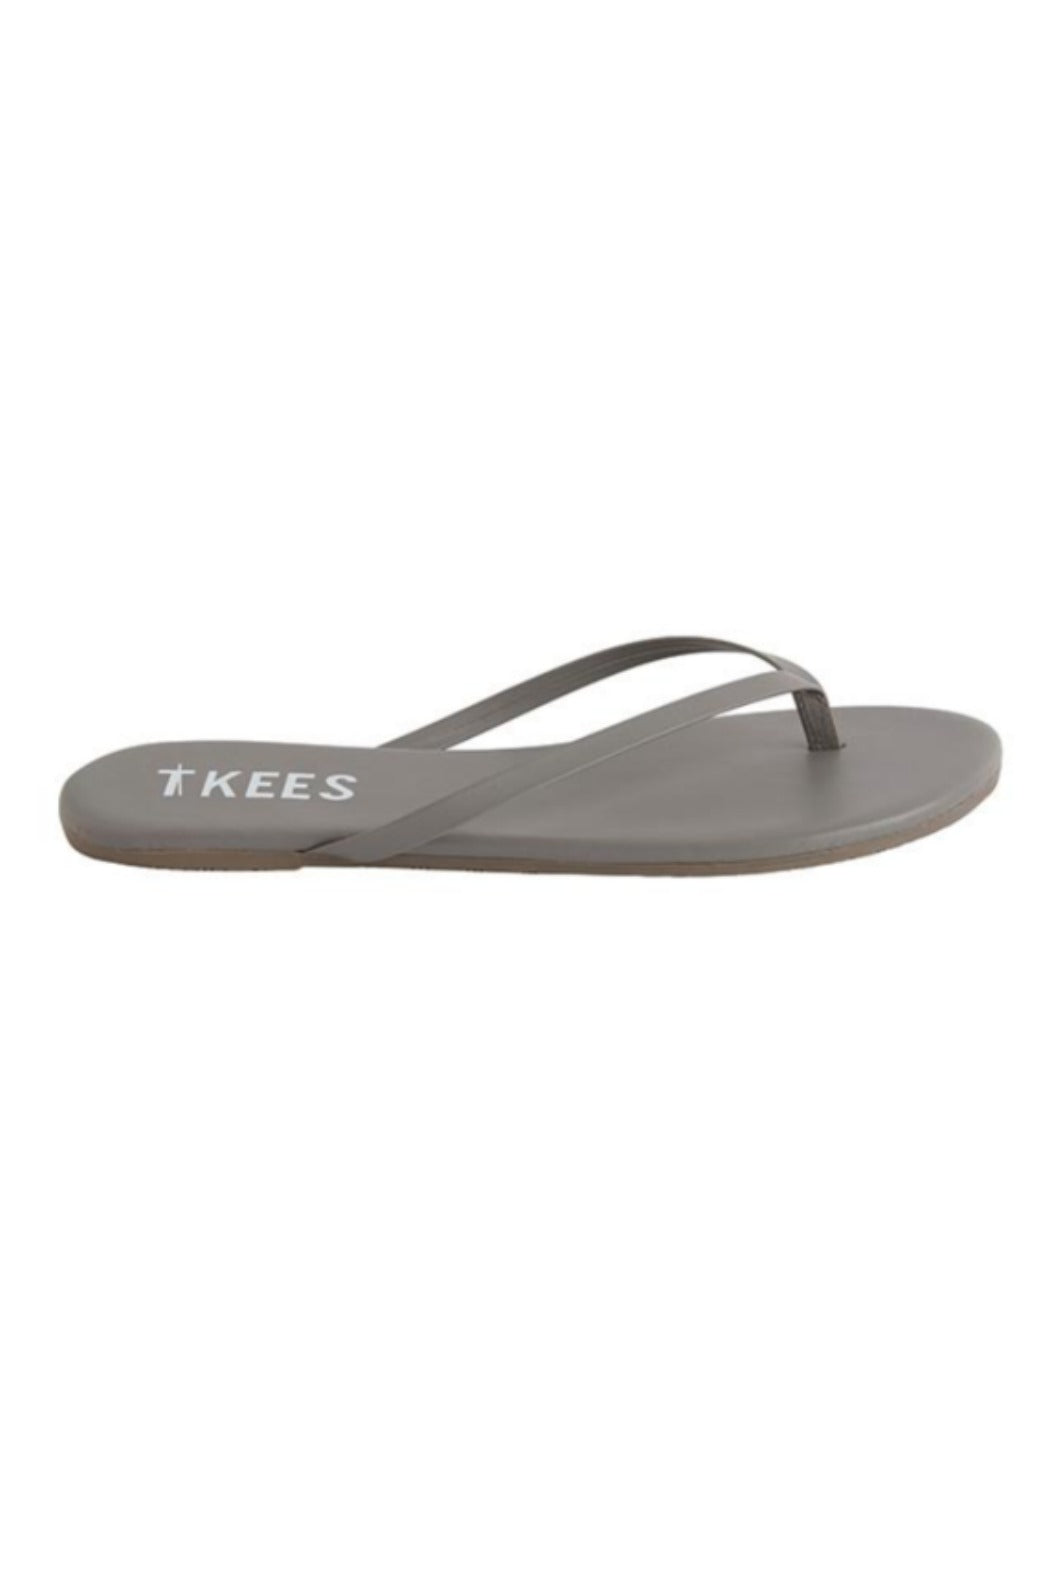 """TKEES"", Solid Gray Color #9 Sandals"